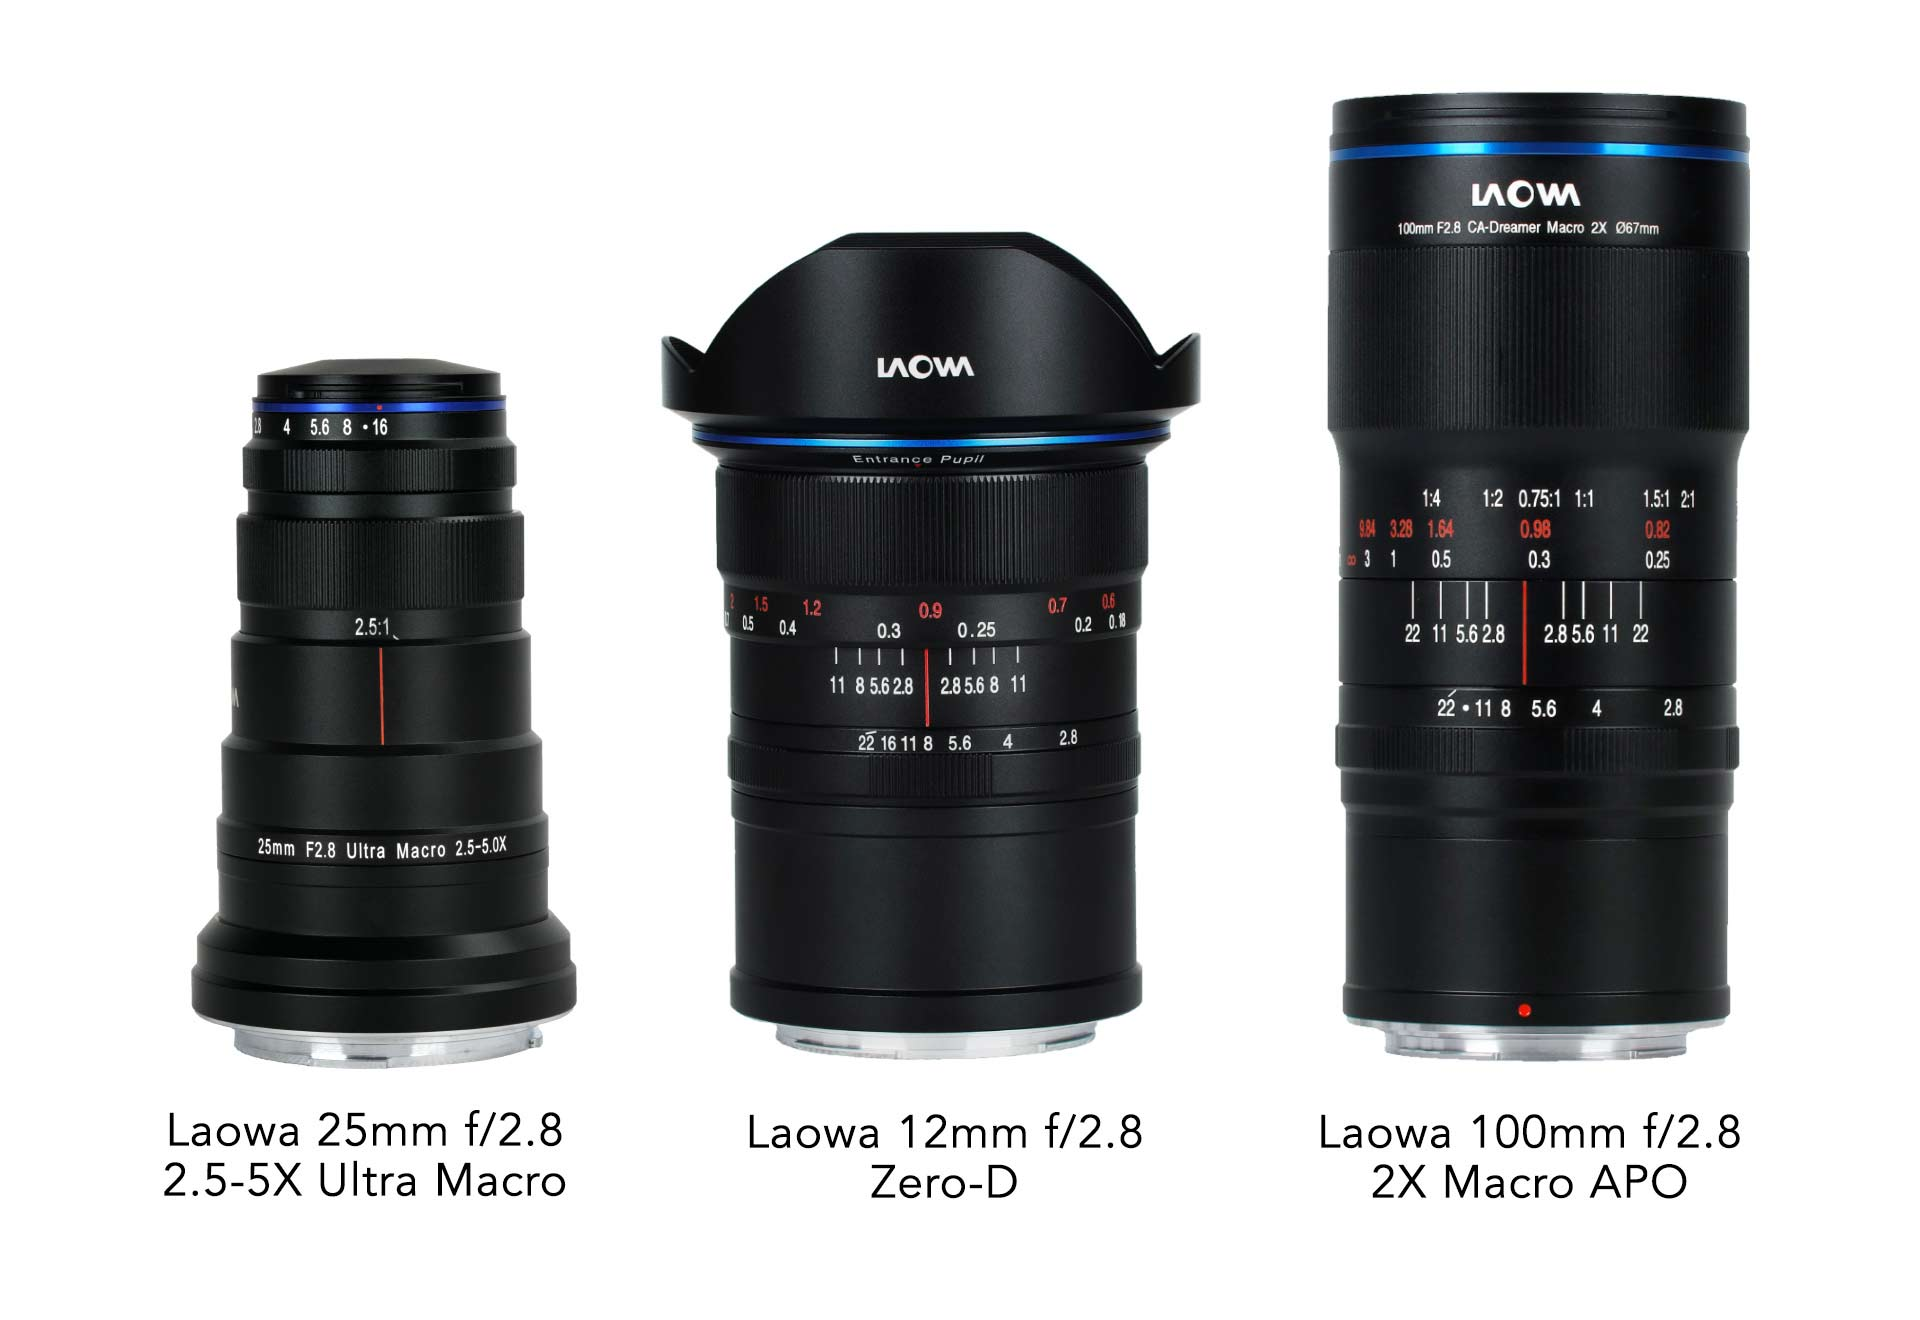 3 Laowa lenses in RF, Z mount